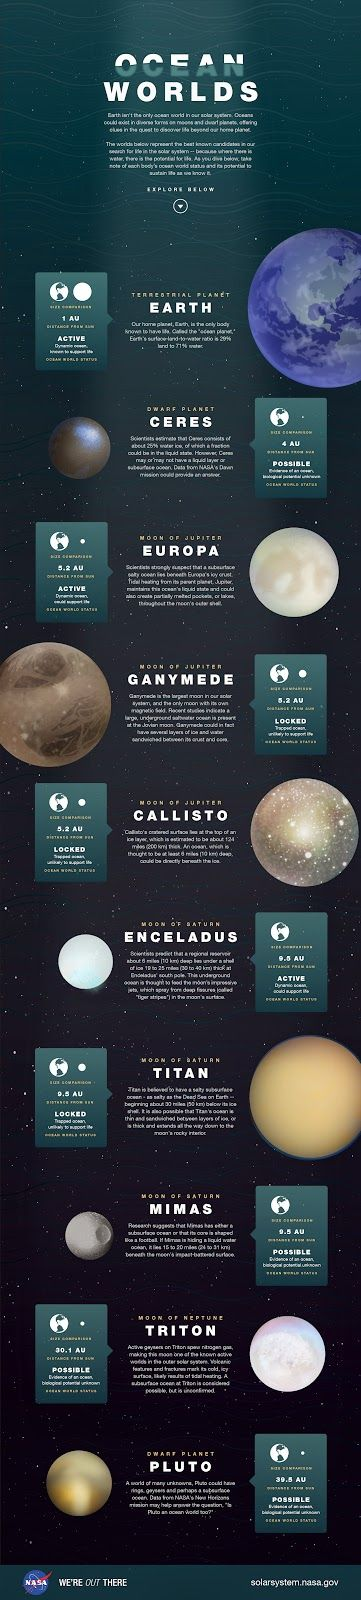 Next Big Future: At least ten planets, moons and dwarf planets have liquid oceans in our solar system and they likely have at least microbial life